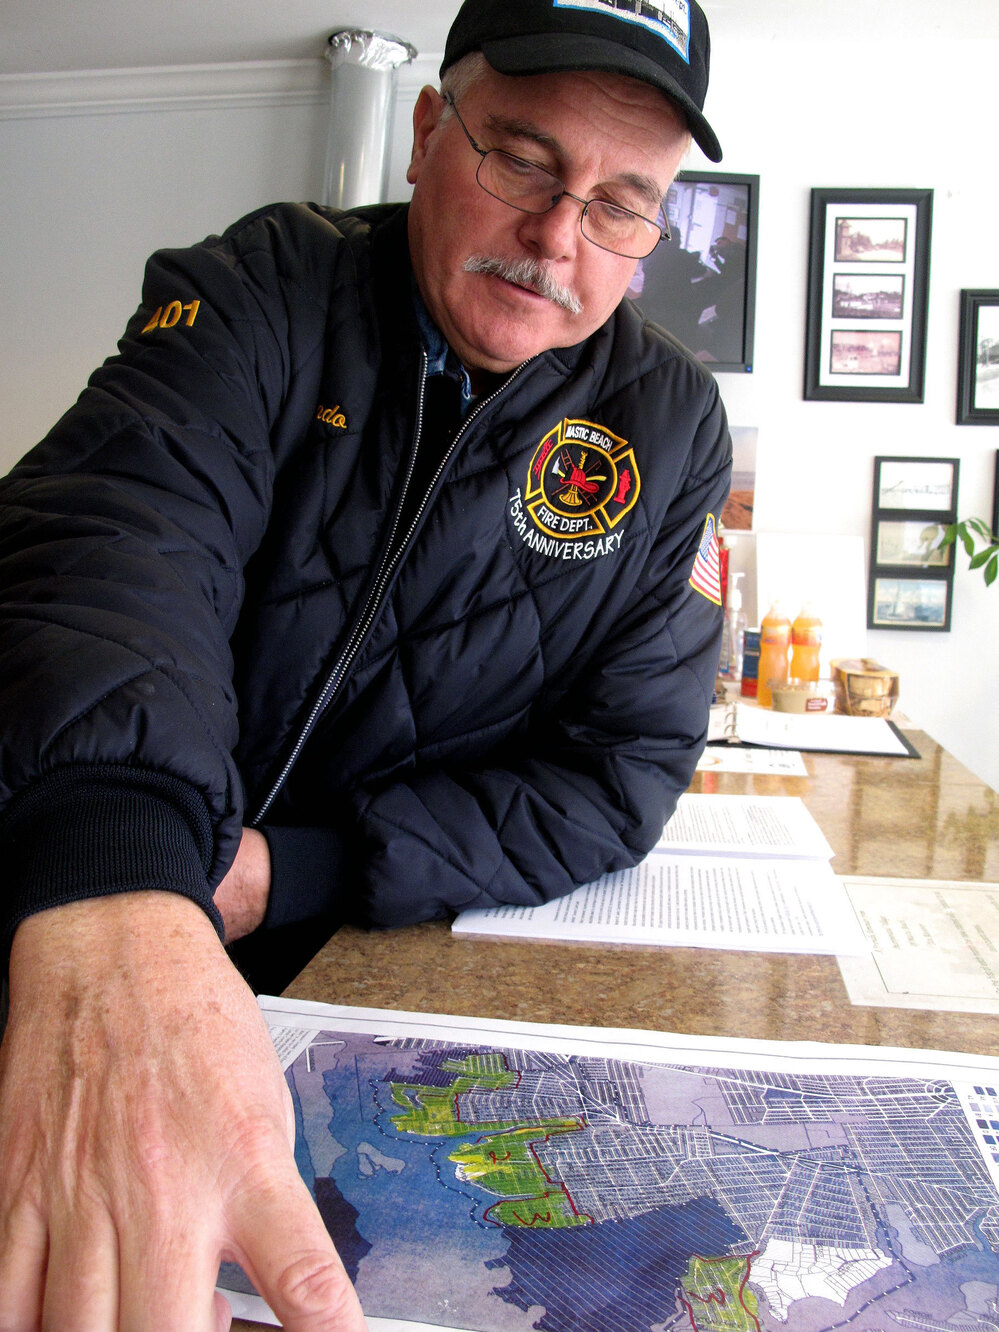 Mastic Beach Mayor Bill Biondi looks over a map of the flooding in his community from Hurricane Sandy. More than a thousand homes here were inundated with seawater.